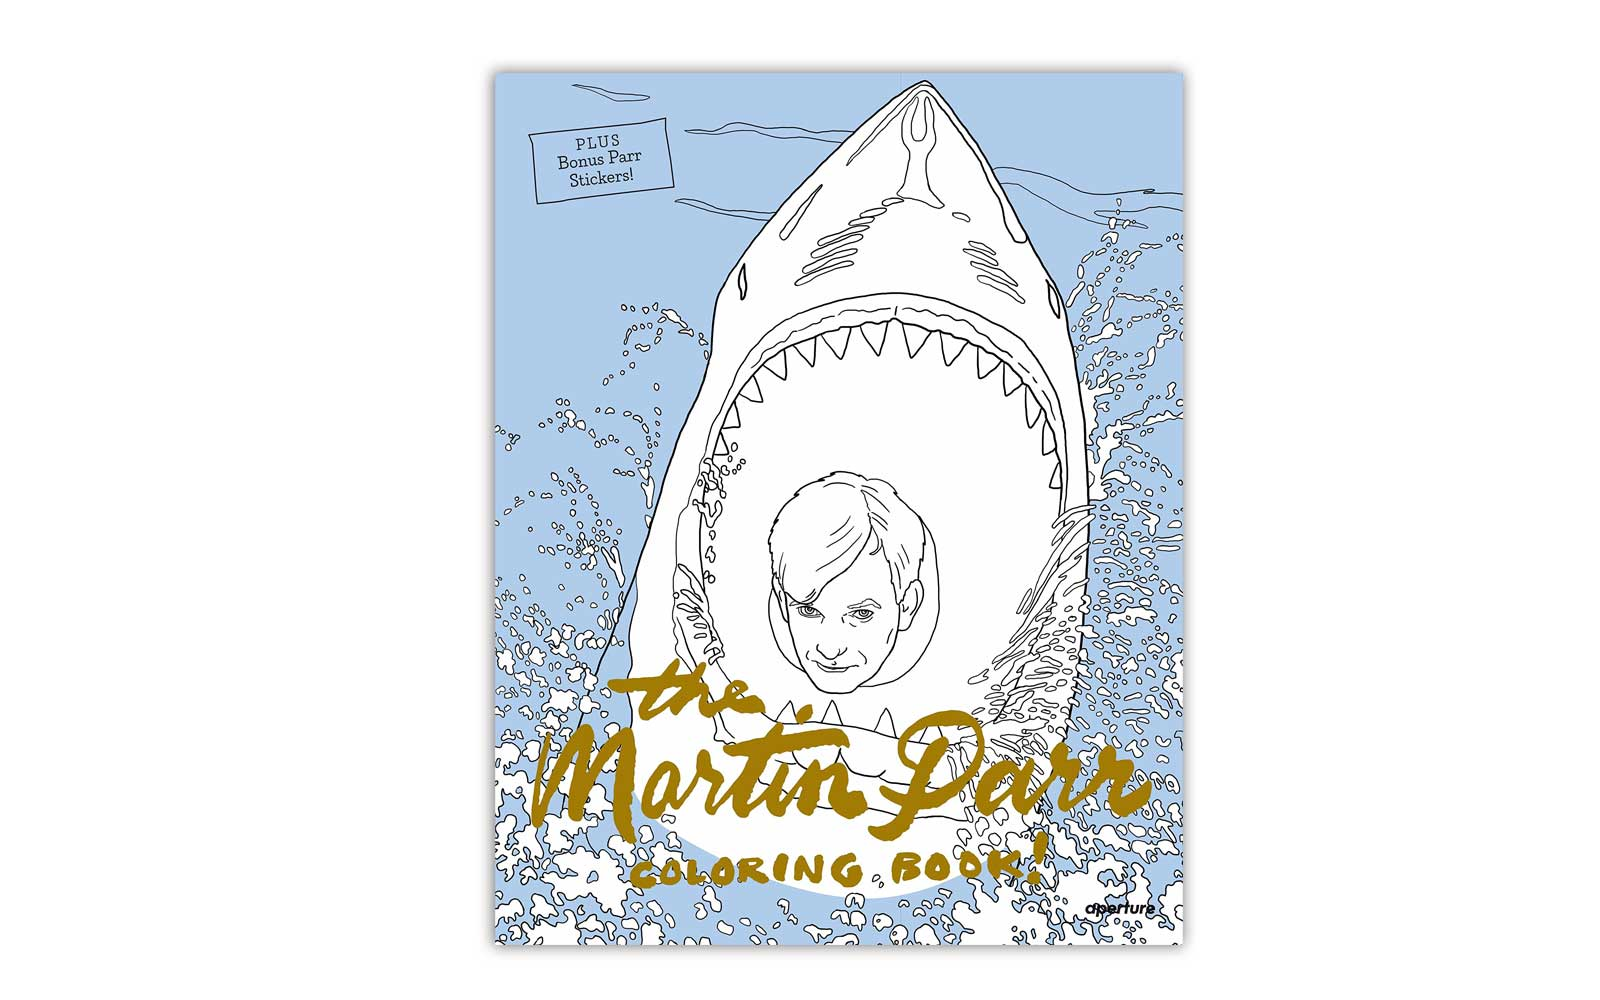 'The Martin Parr Coloring Book!'